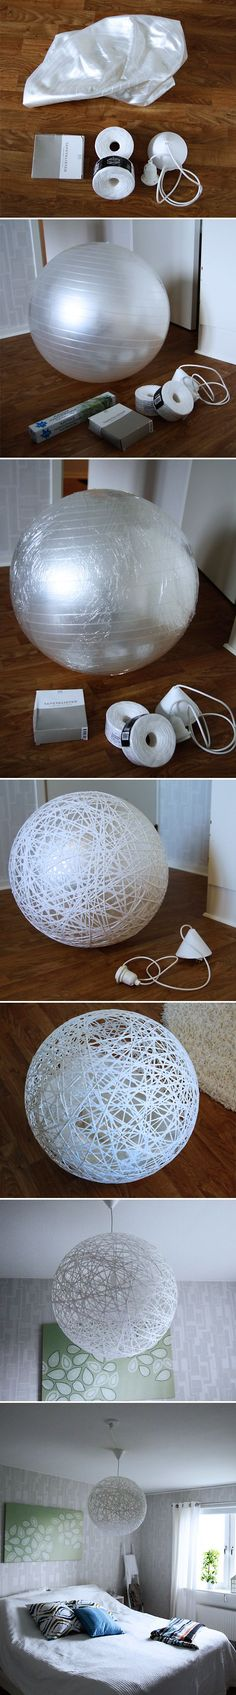 DIY String Lamp diy crafts craft ideas easy crafts diy ideas diy home diy decor easy diy home crafts diy decorations diy lighting diy decorating Home Crafts, Fun Crafts, Diy Home Decor, Diy And Crafts, Arts And Crafts, String Crafts, Room Decor, Homemade Crafts, Diy Projects To Try